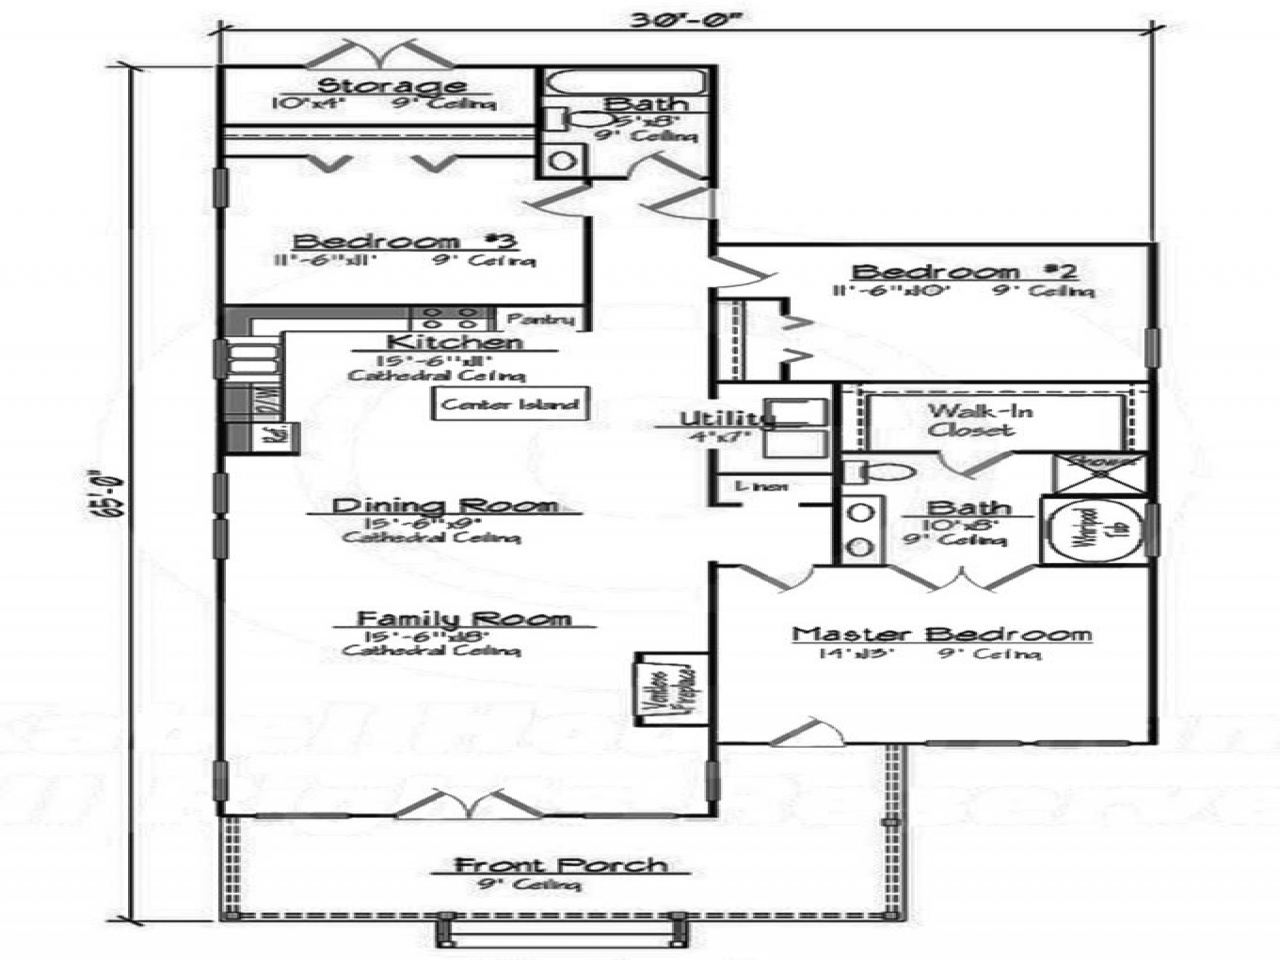 Small 3 bedroom house floor plans 2 bedroom house layouts for Small 3 bedroom house plans